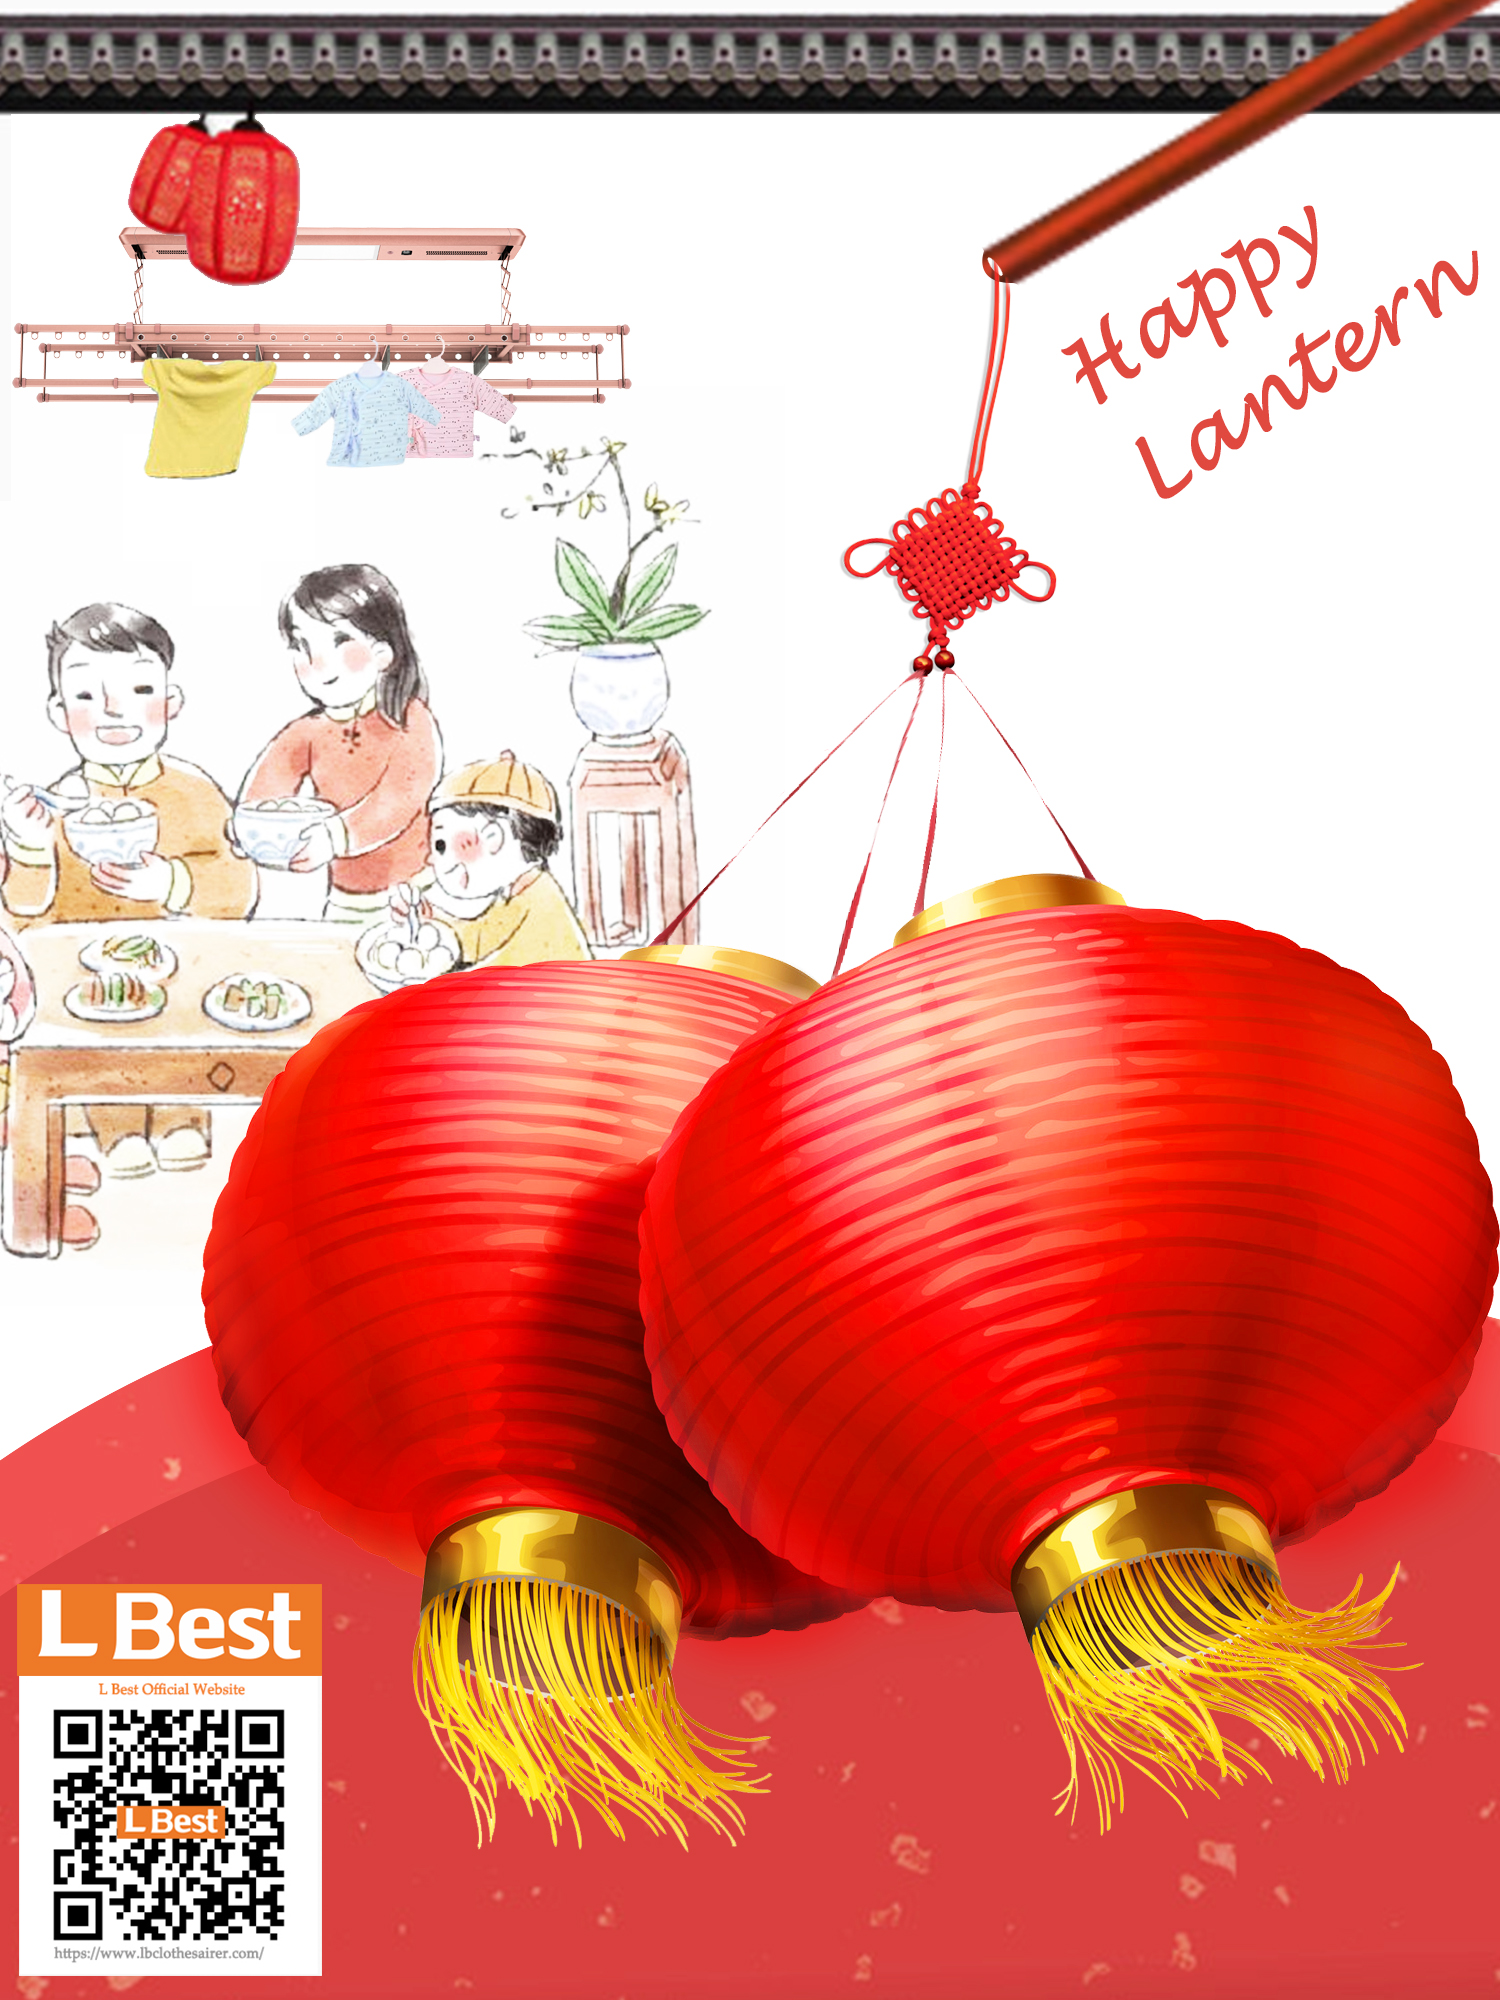 Happy Lantern Festival. LBest's Lantern Festival, this thing is necessary